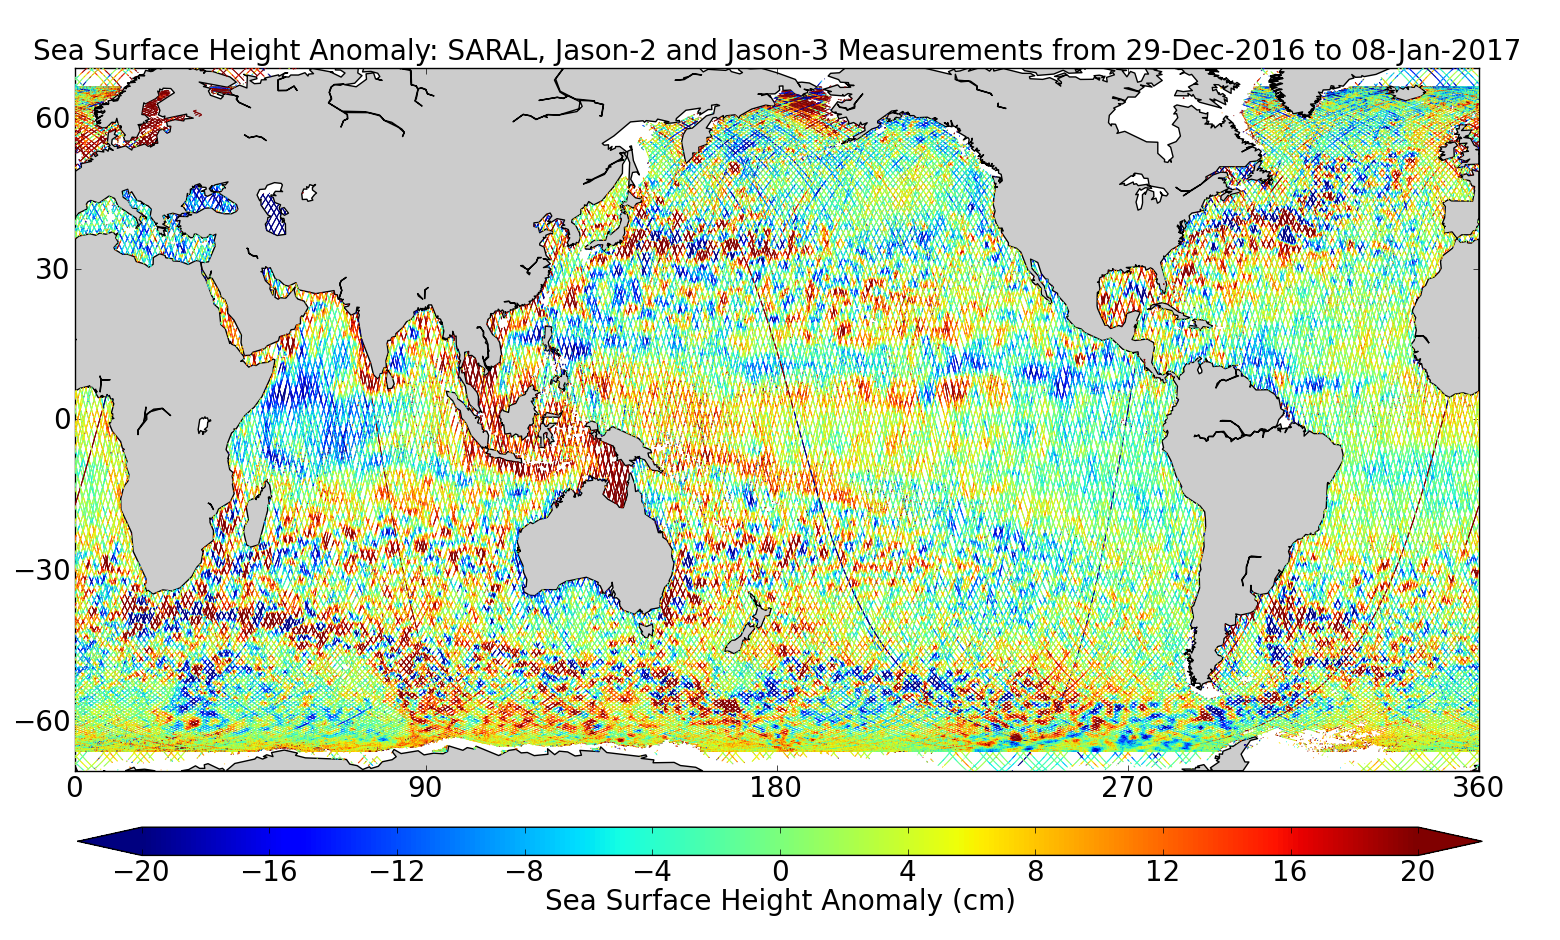 Sea Surface Height Anomaly: SARAL, Jason-2 and Jason-3 Measurements from 29-Dec-2016 to 08-Jan-2017